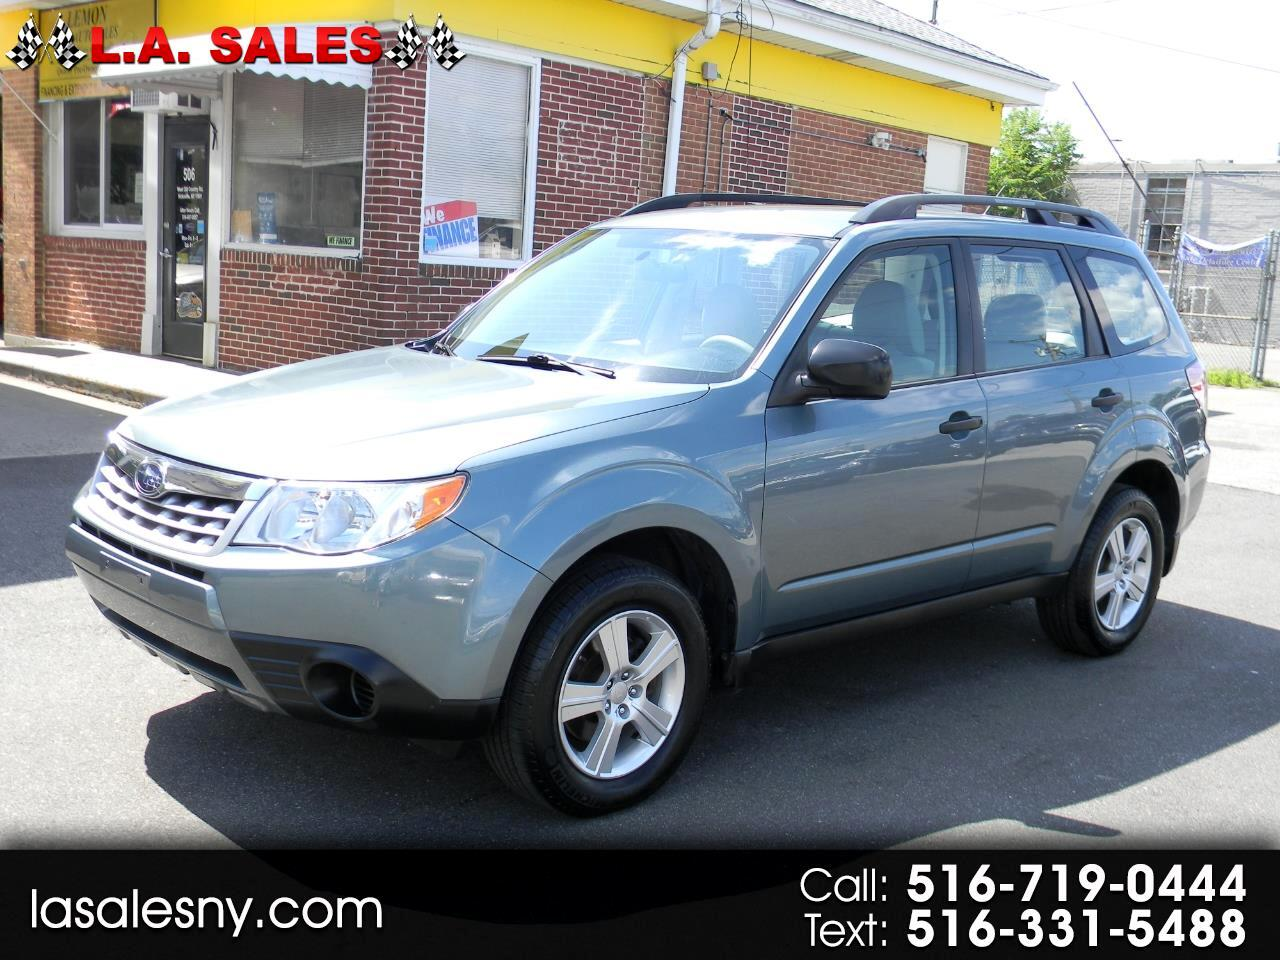 Subaru Forester 4dr Auto 2.5X w/Alloy Wheel Value Pkg 2011